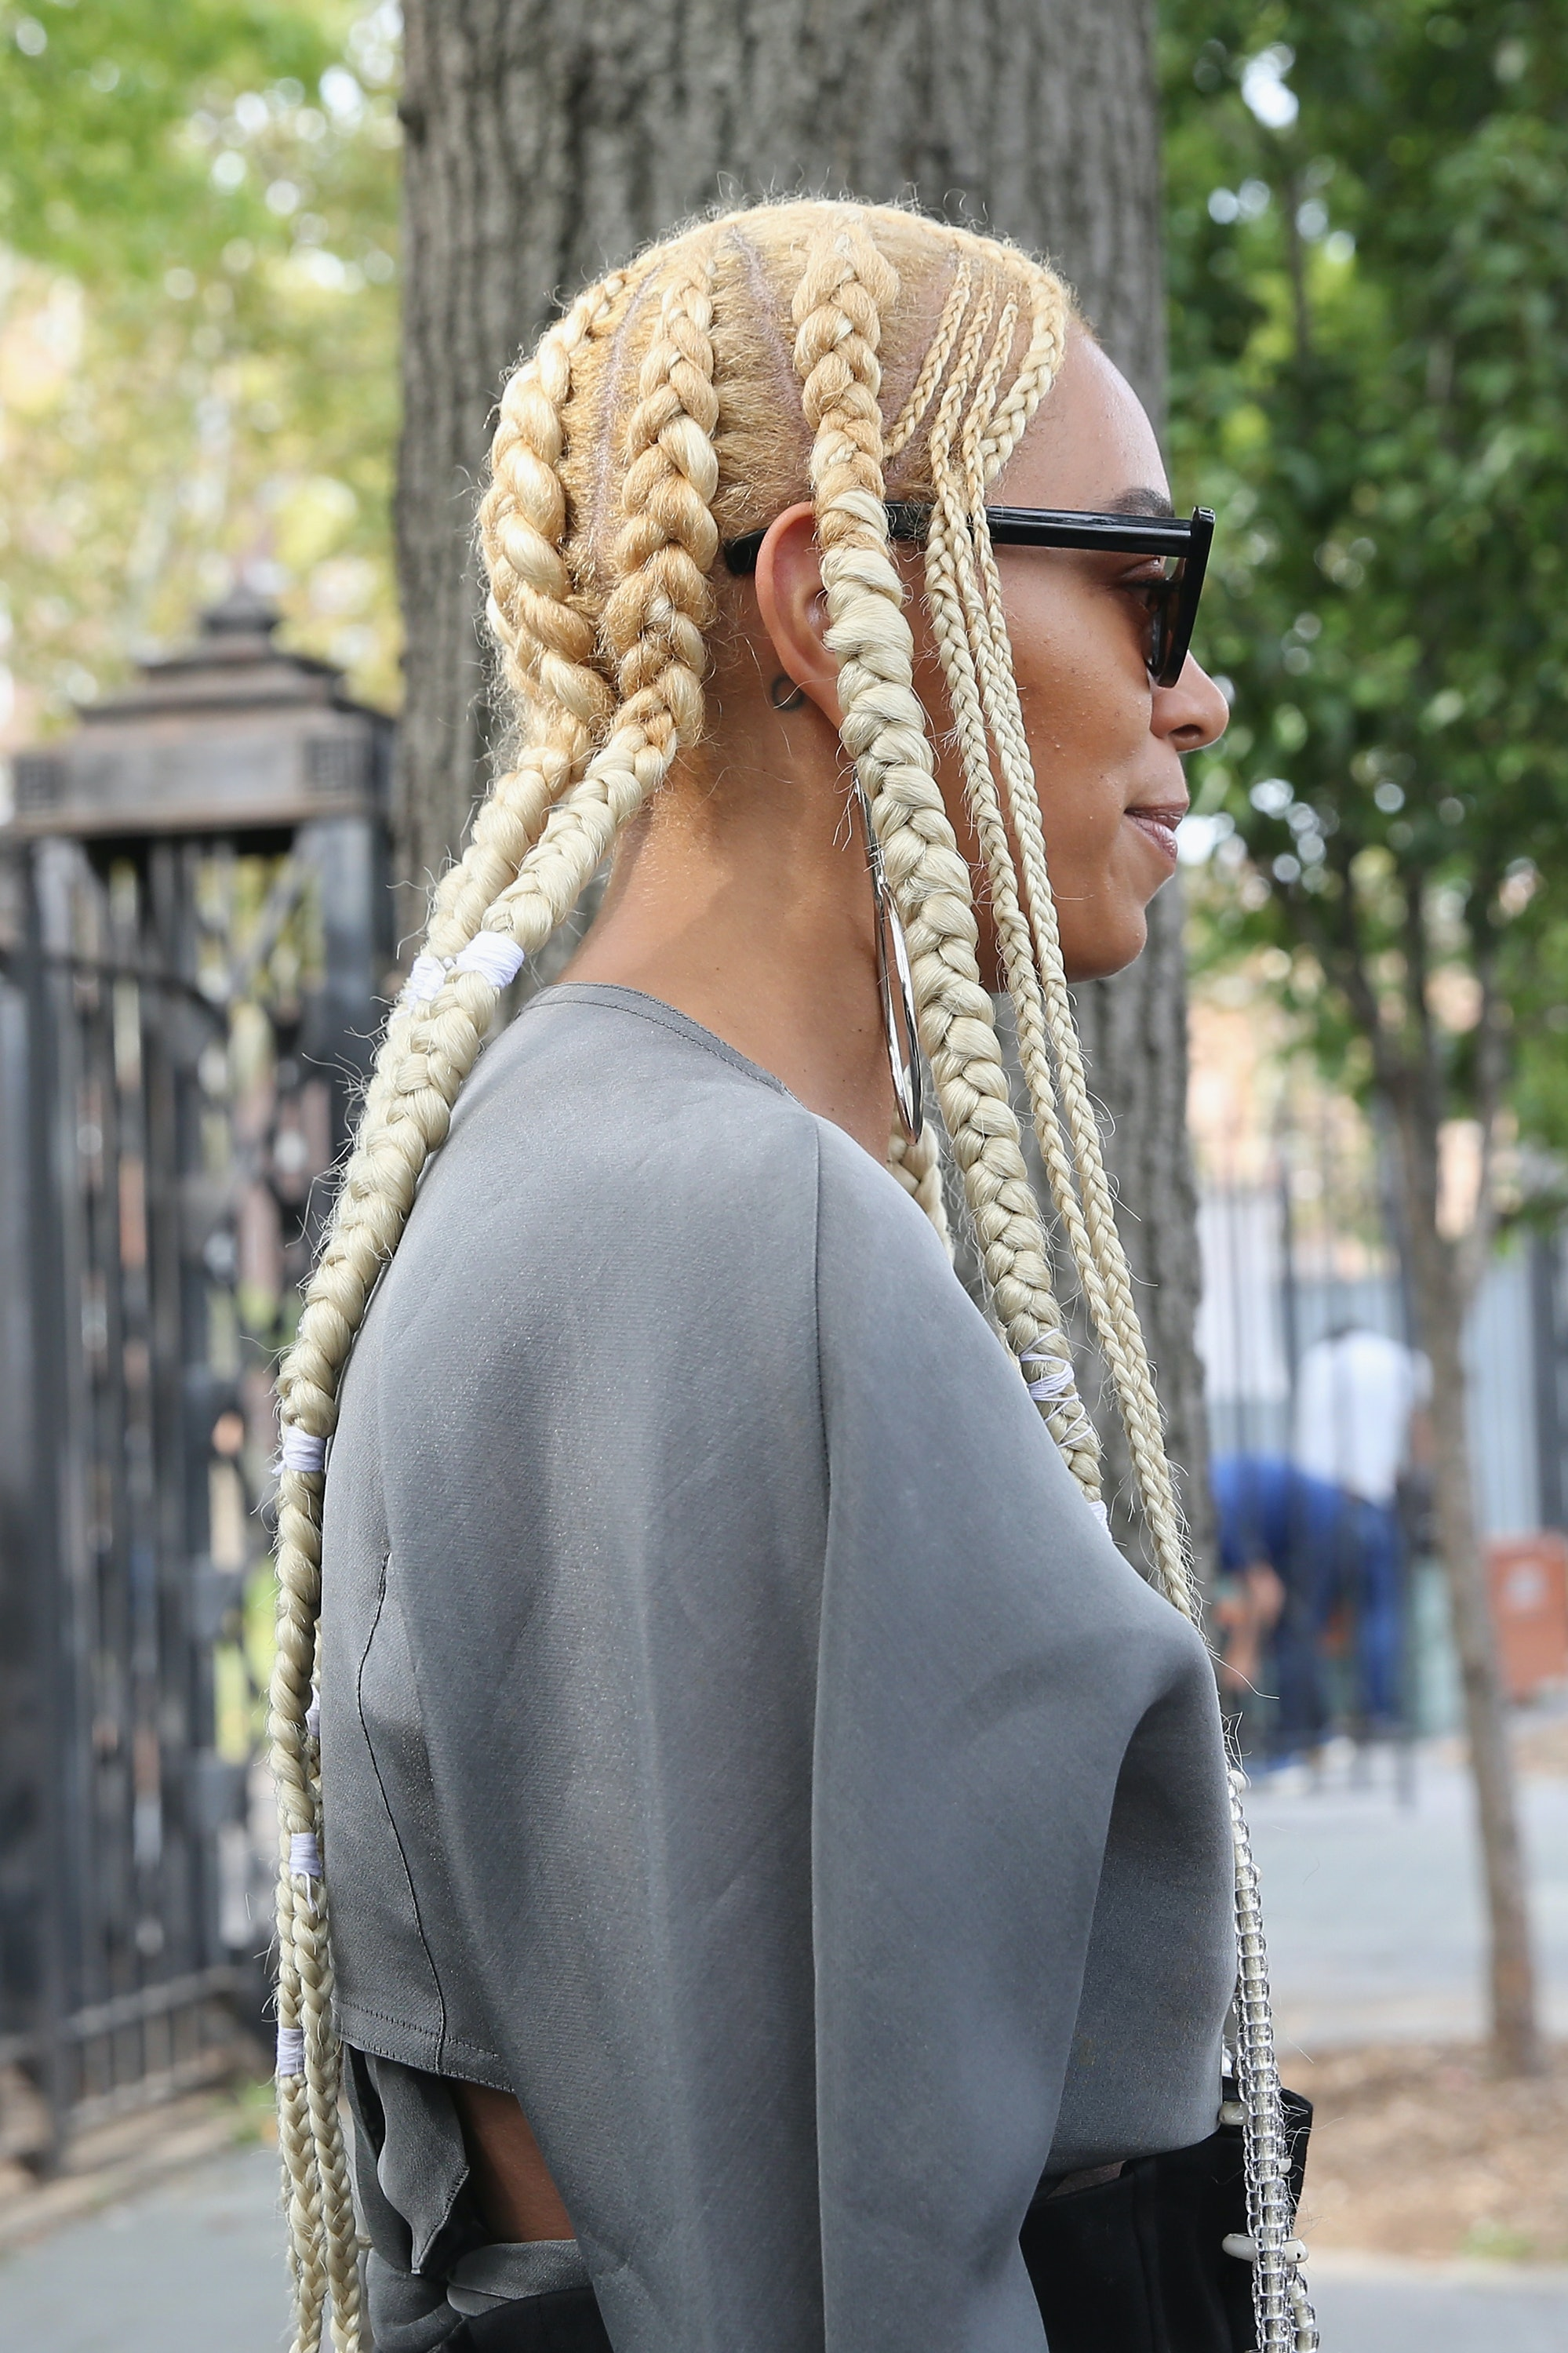 12 Braided Styles For Natural Hair That Will Make Dealing With Humidity A Breeze